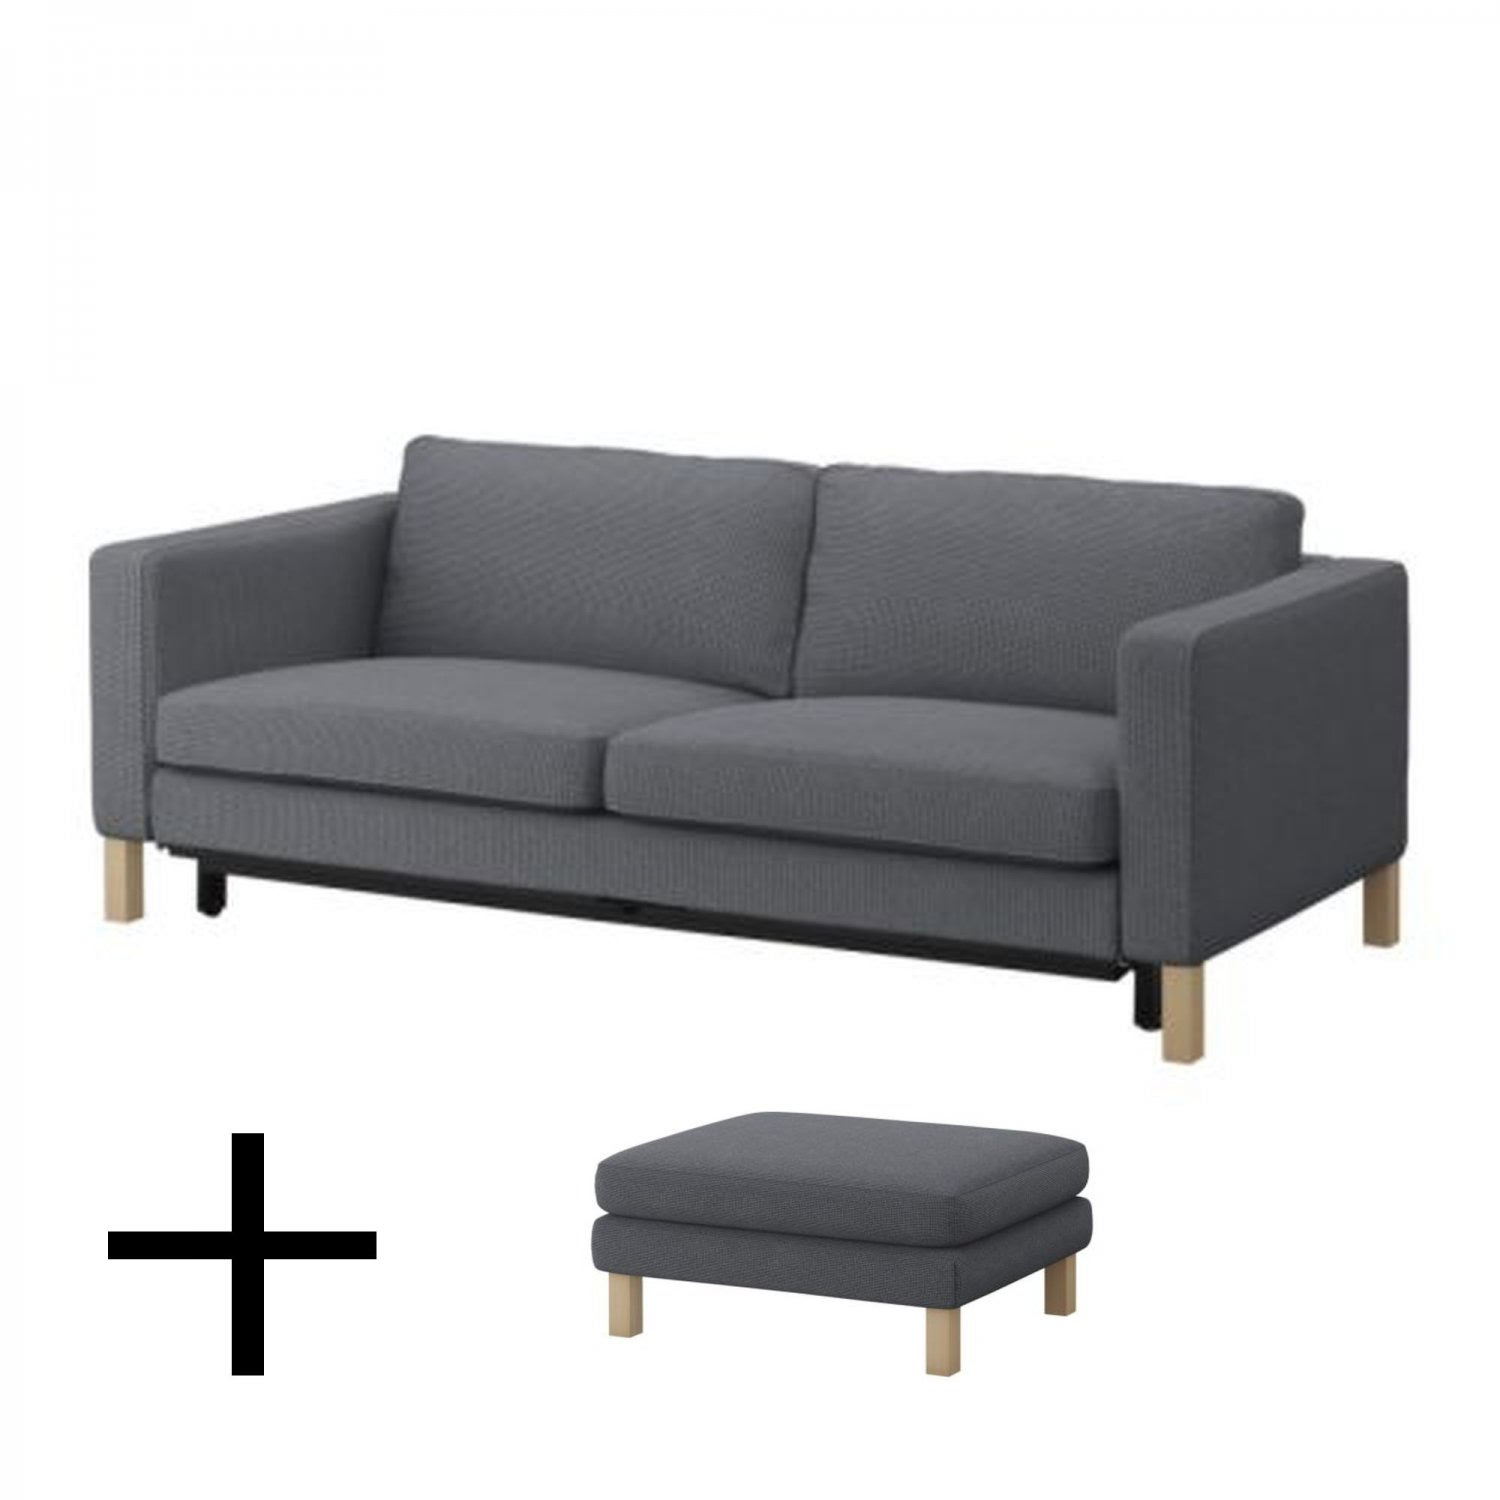 Groovy Ikea Karlstad Sofa Bed And Footstool Slipcovers Sofabed Short Links Chair Design For Home Short Linksinfo